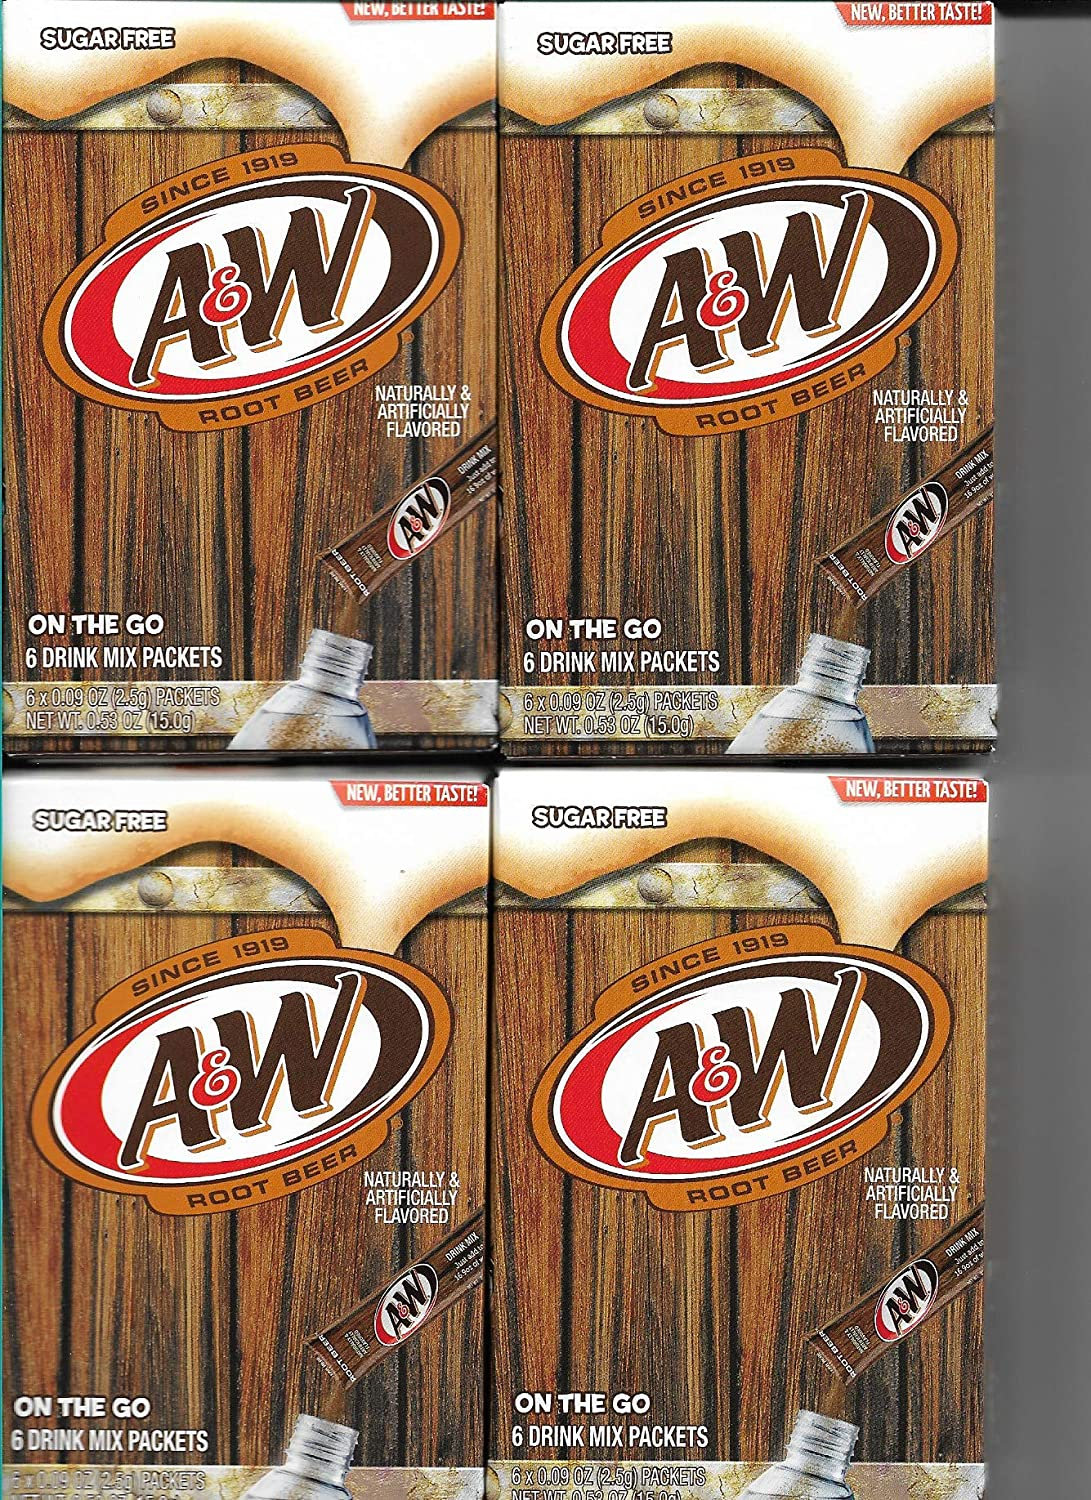 A&W Root Beer Sugar Free Singles To go Drink Mix by A&W